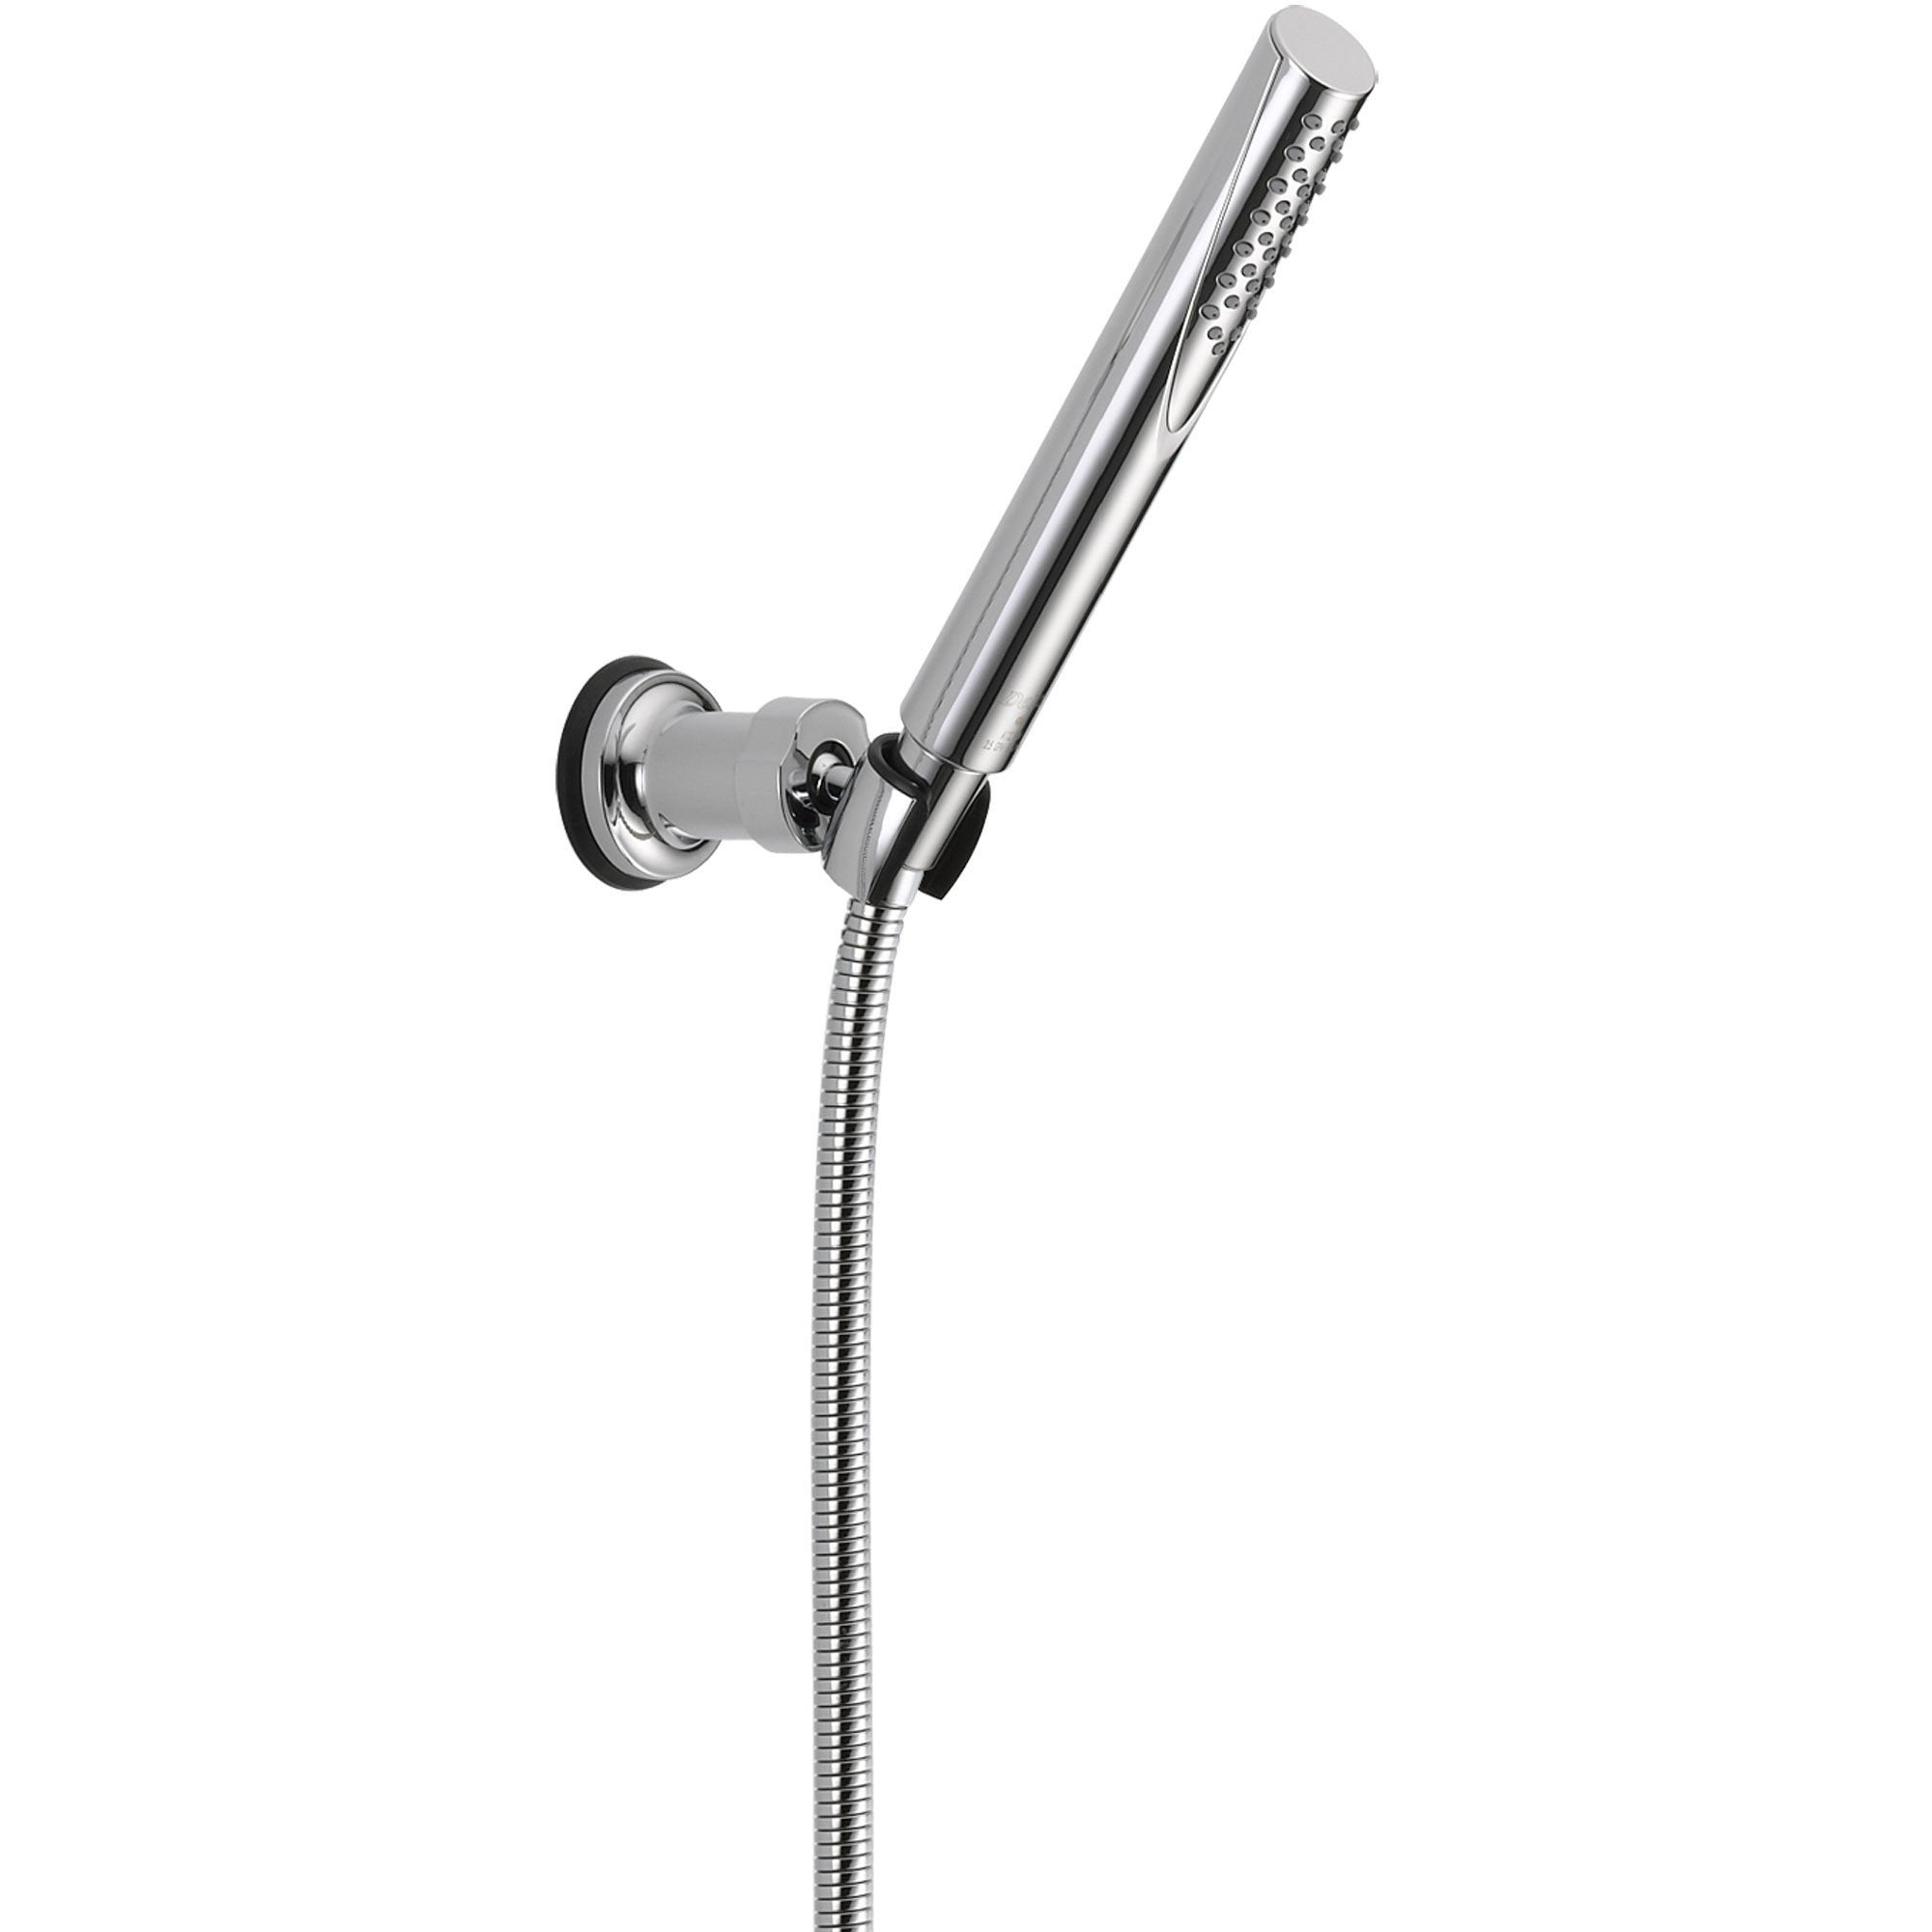 Delta Trinsic Modern Chrome Handheld Shower Head w/ Wall Bracket ...